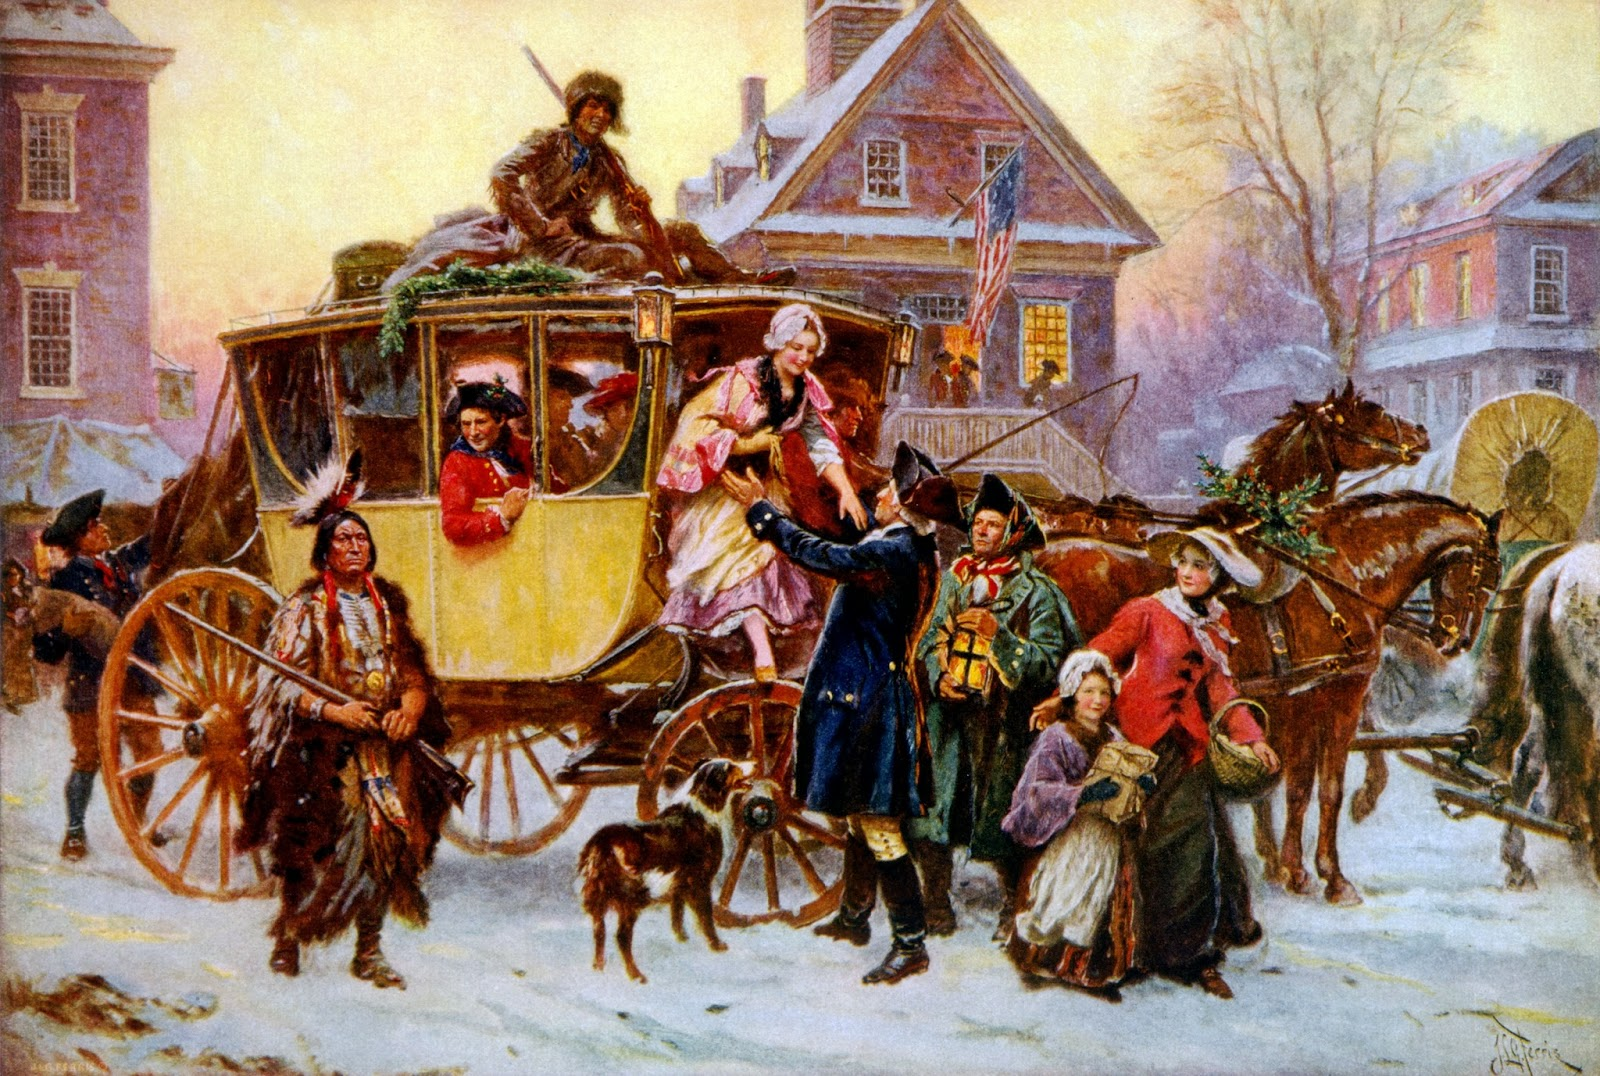 Early-American-History-Images-HD-1080p-http-wallawy-com-early-american-history-images-hd-1080p-wallpaper-wp3804987